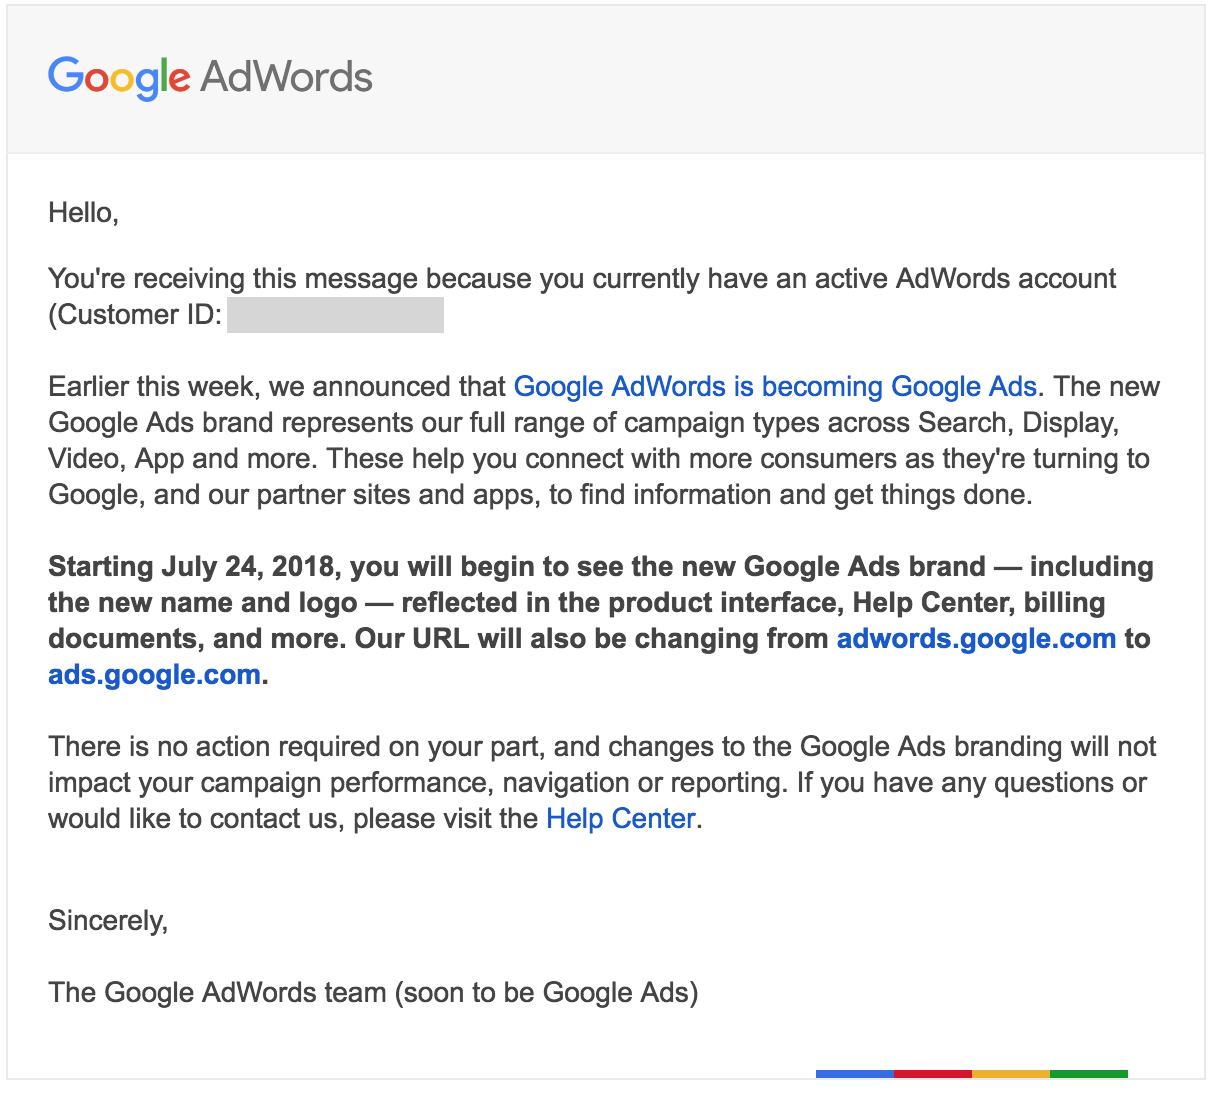 Google Adwords Becoming Google Ads Griffin and Co. Marketing.png